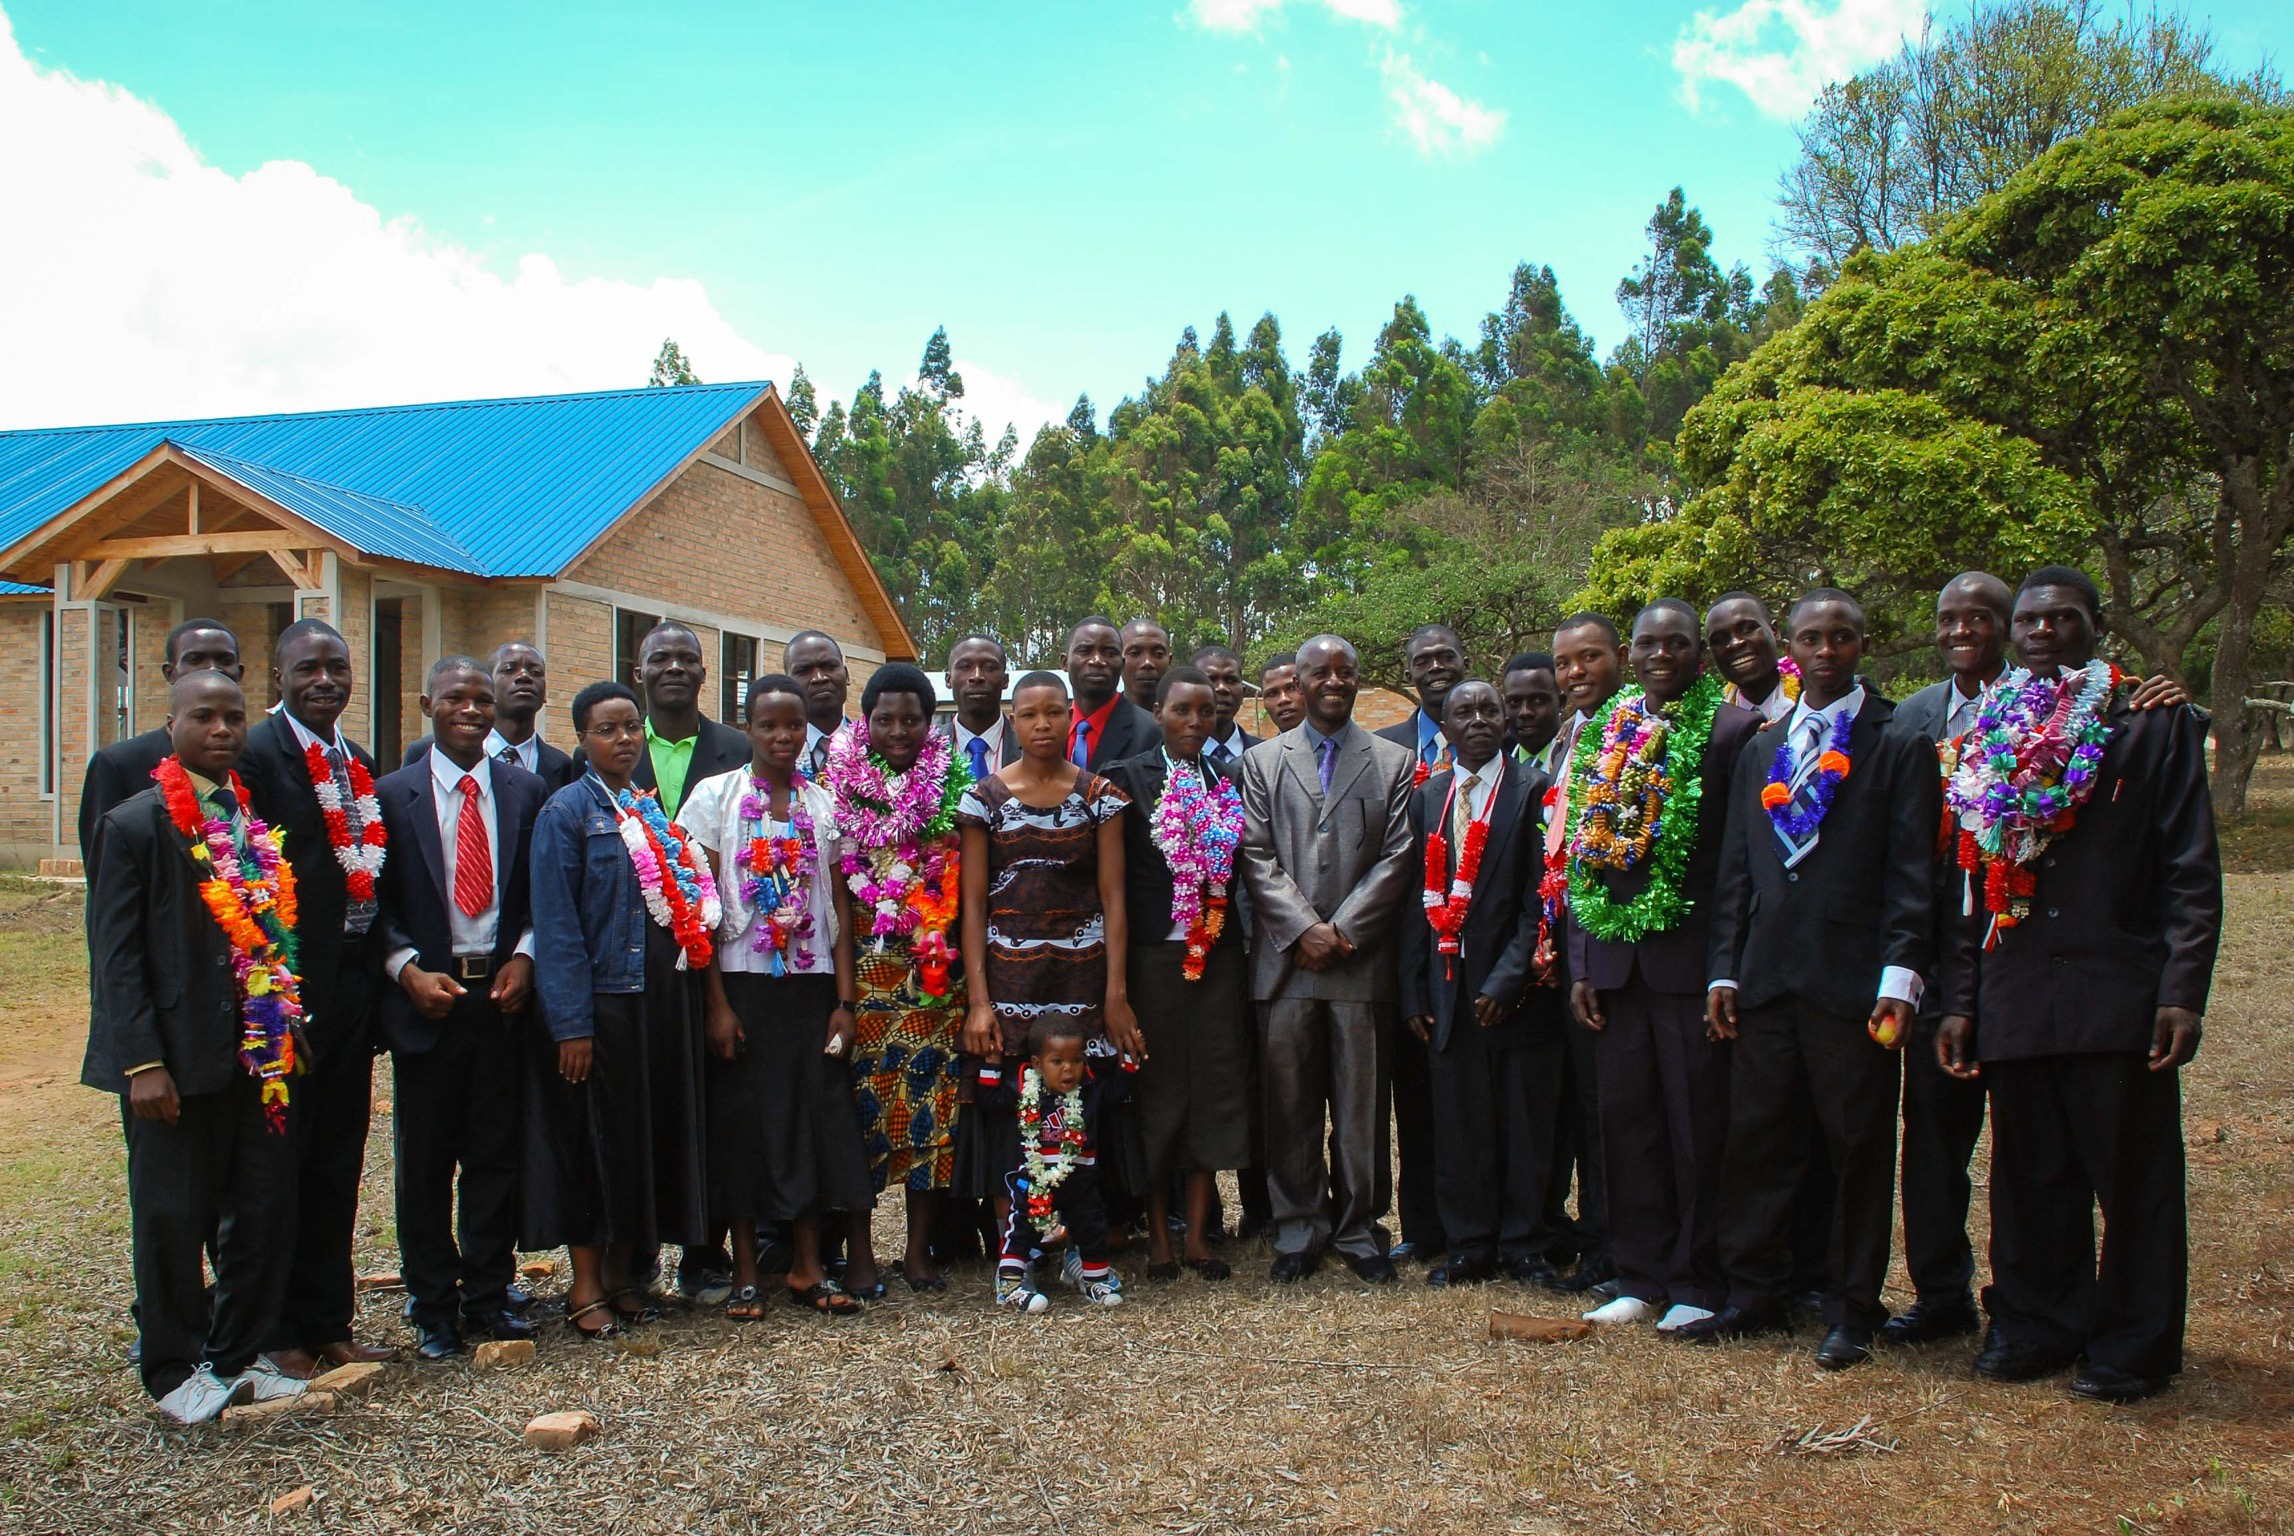 Graduation of Evangelism School Students (Session 2, 2014)